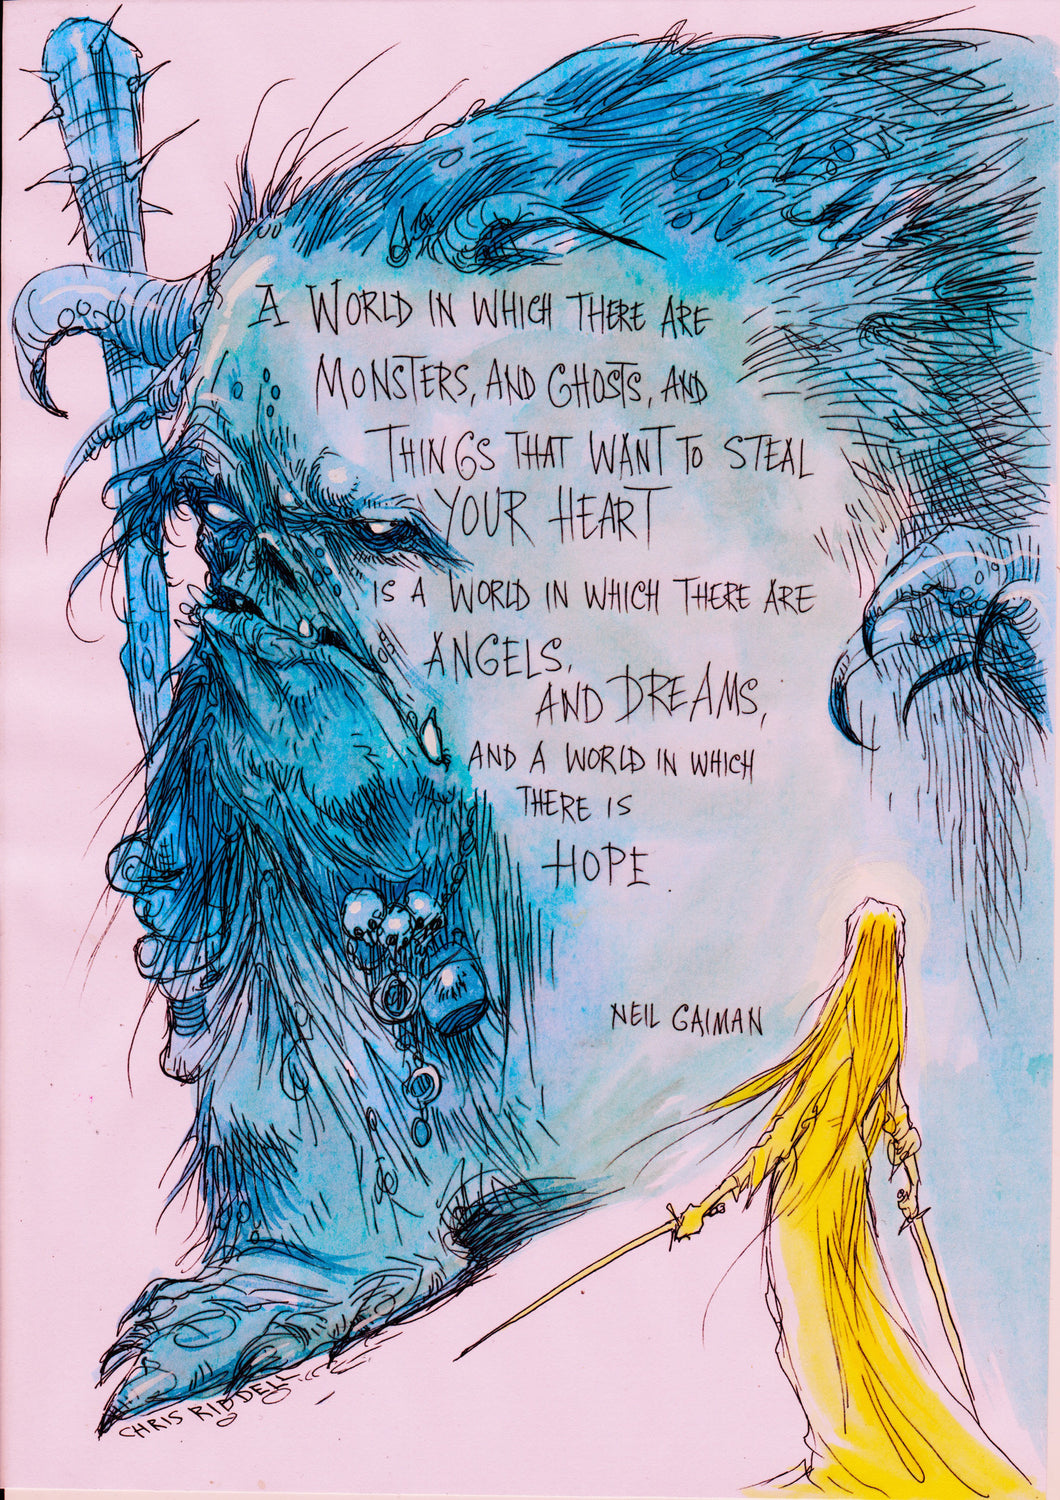 SOLD OUT!! Chris Riddell illustrates Neil's words on HOPE: limited edition print VERY FEW LEFT!!